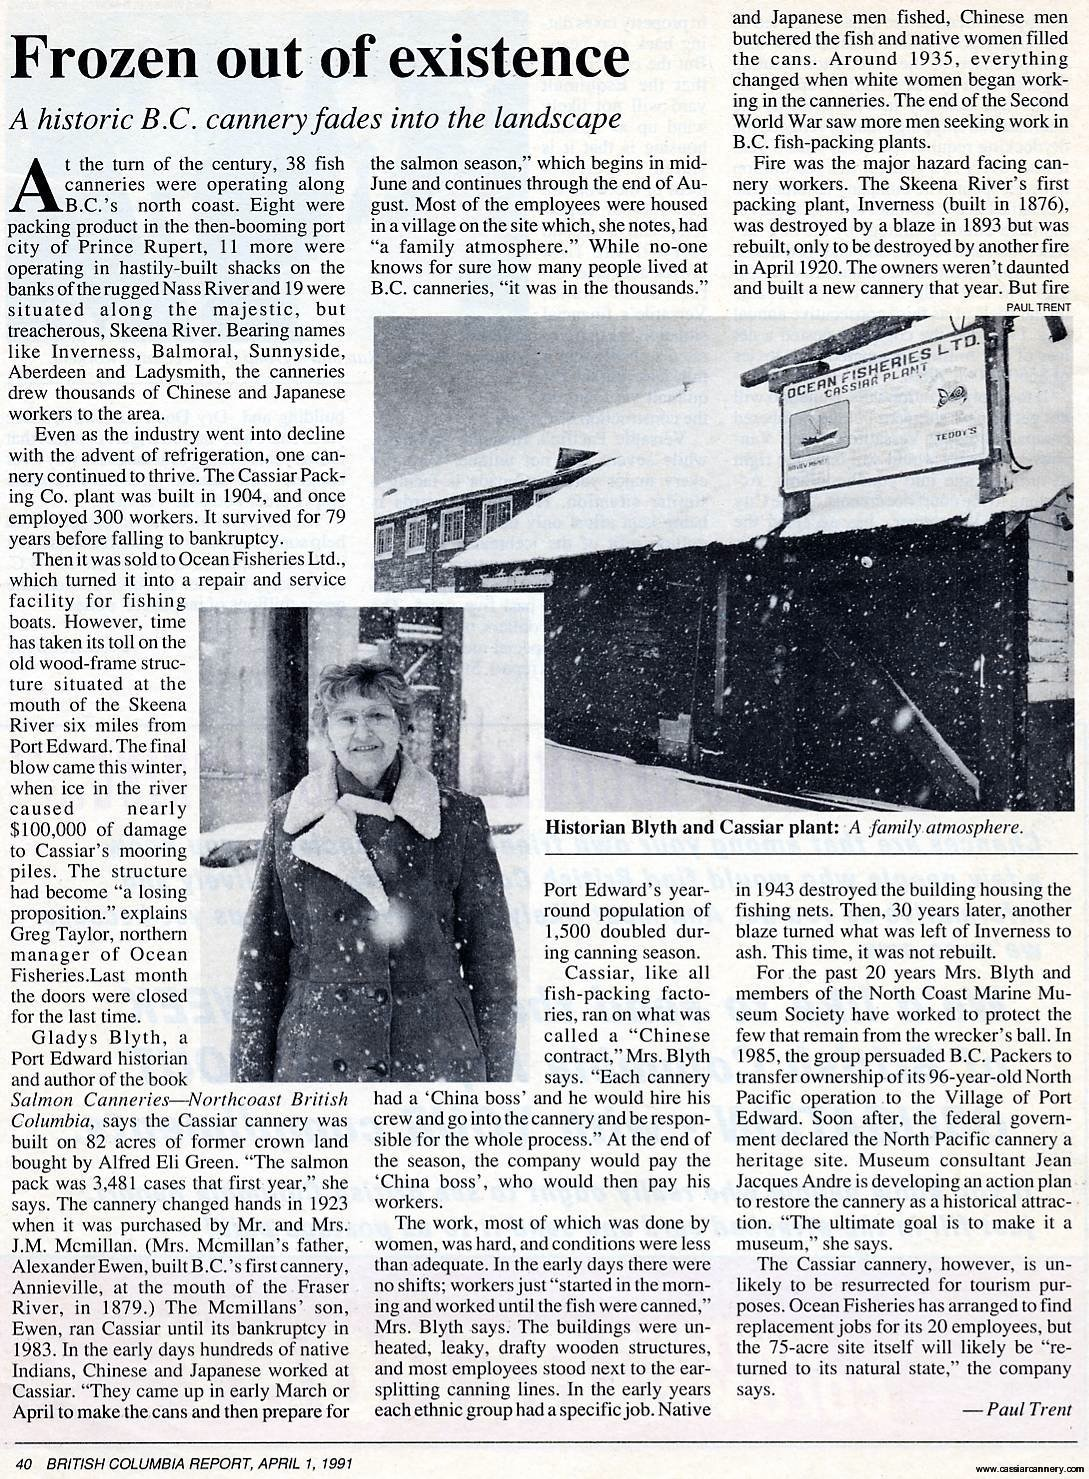 cassiar-cannery-bc-report-april-1991-by-paul-trent-courtesy-of-gladys-blythe